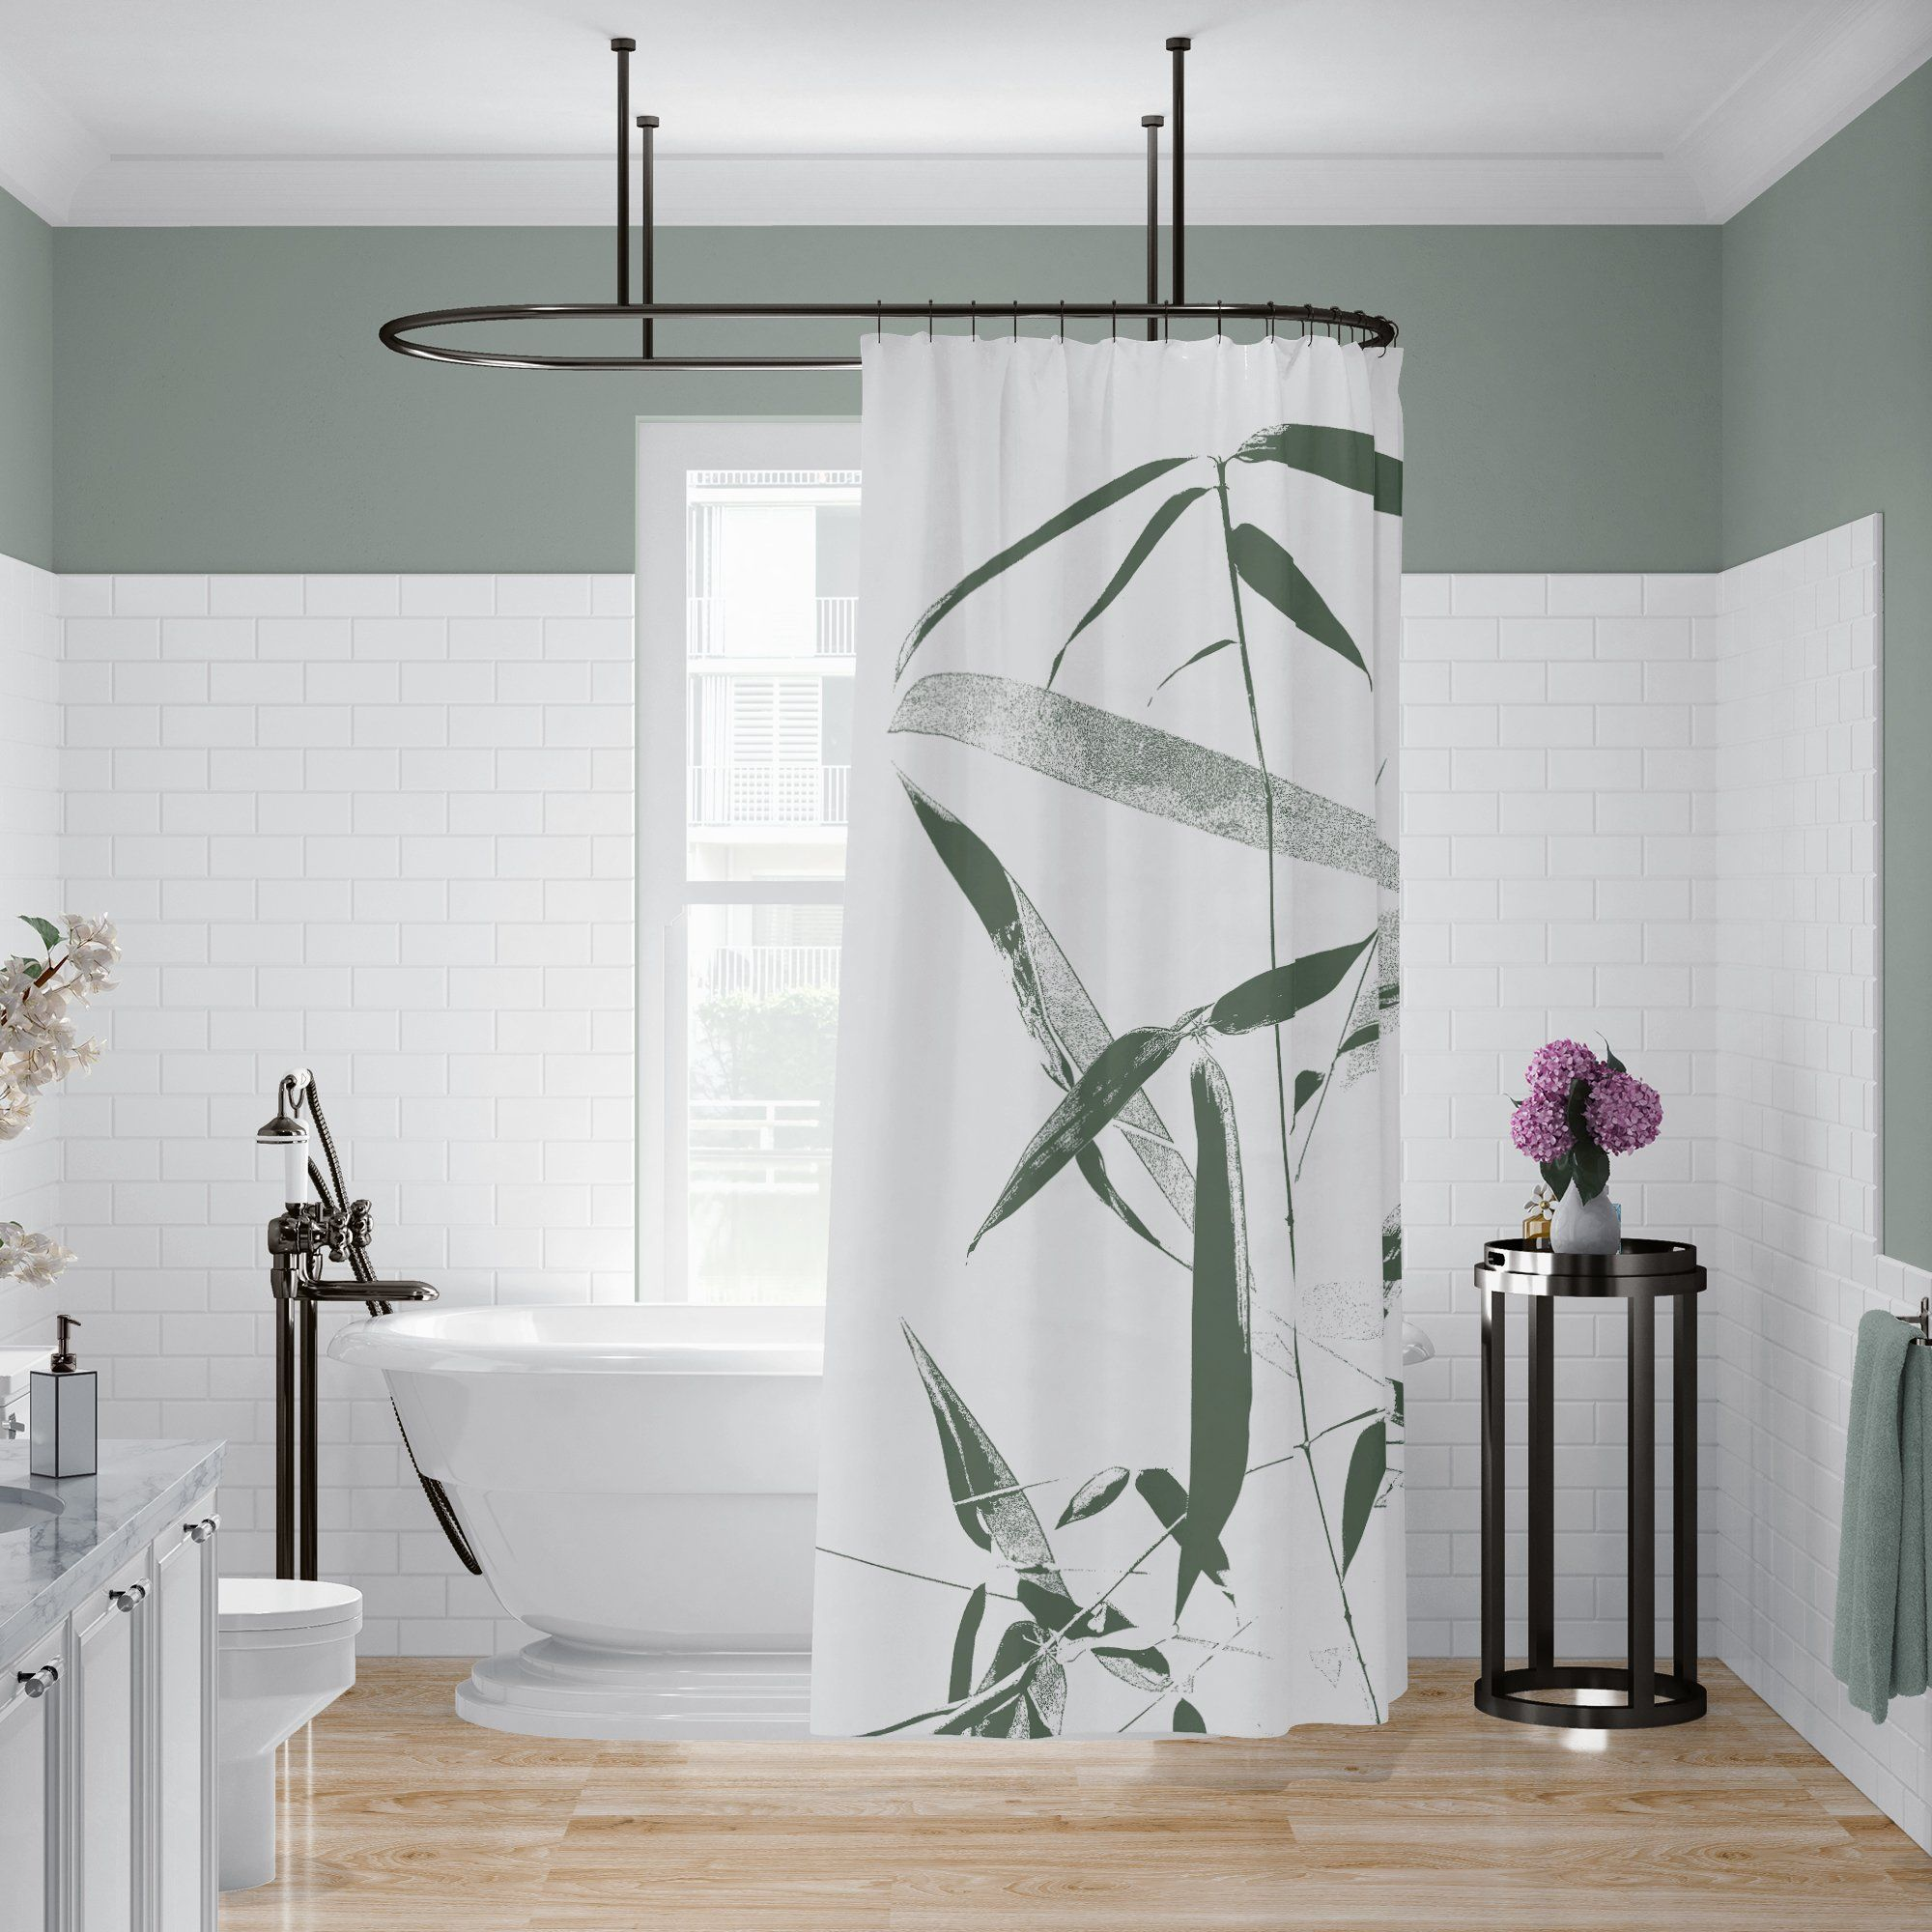 Green And White Bamboo Shower Curtain For Zen Bathroom In 2020